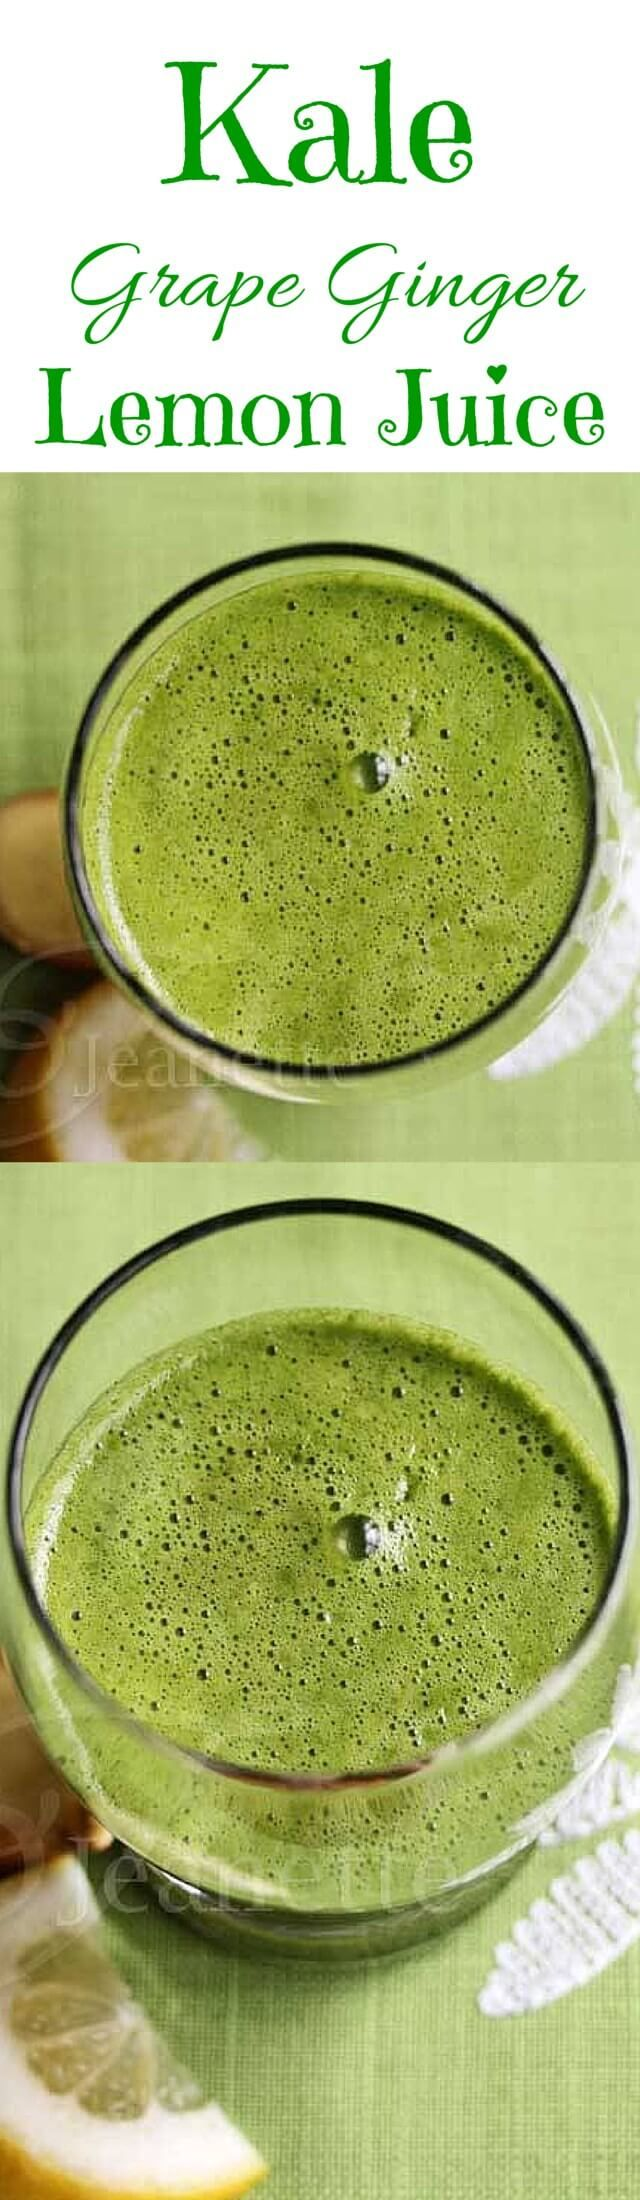 Kale Grape Ginger Lemon Juice - detox your body with this delicious green juice